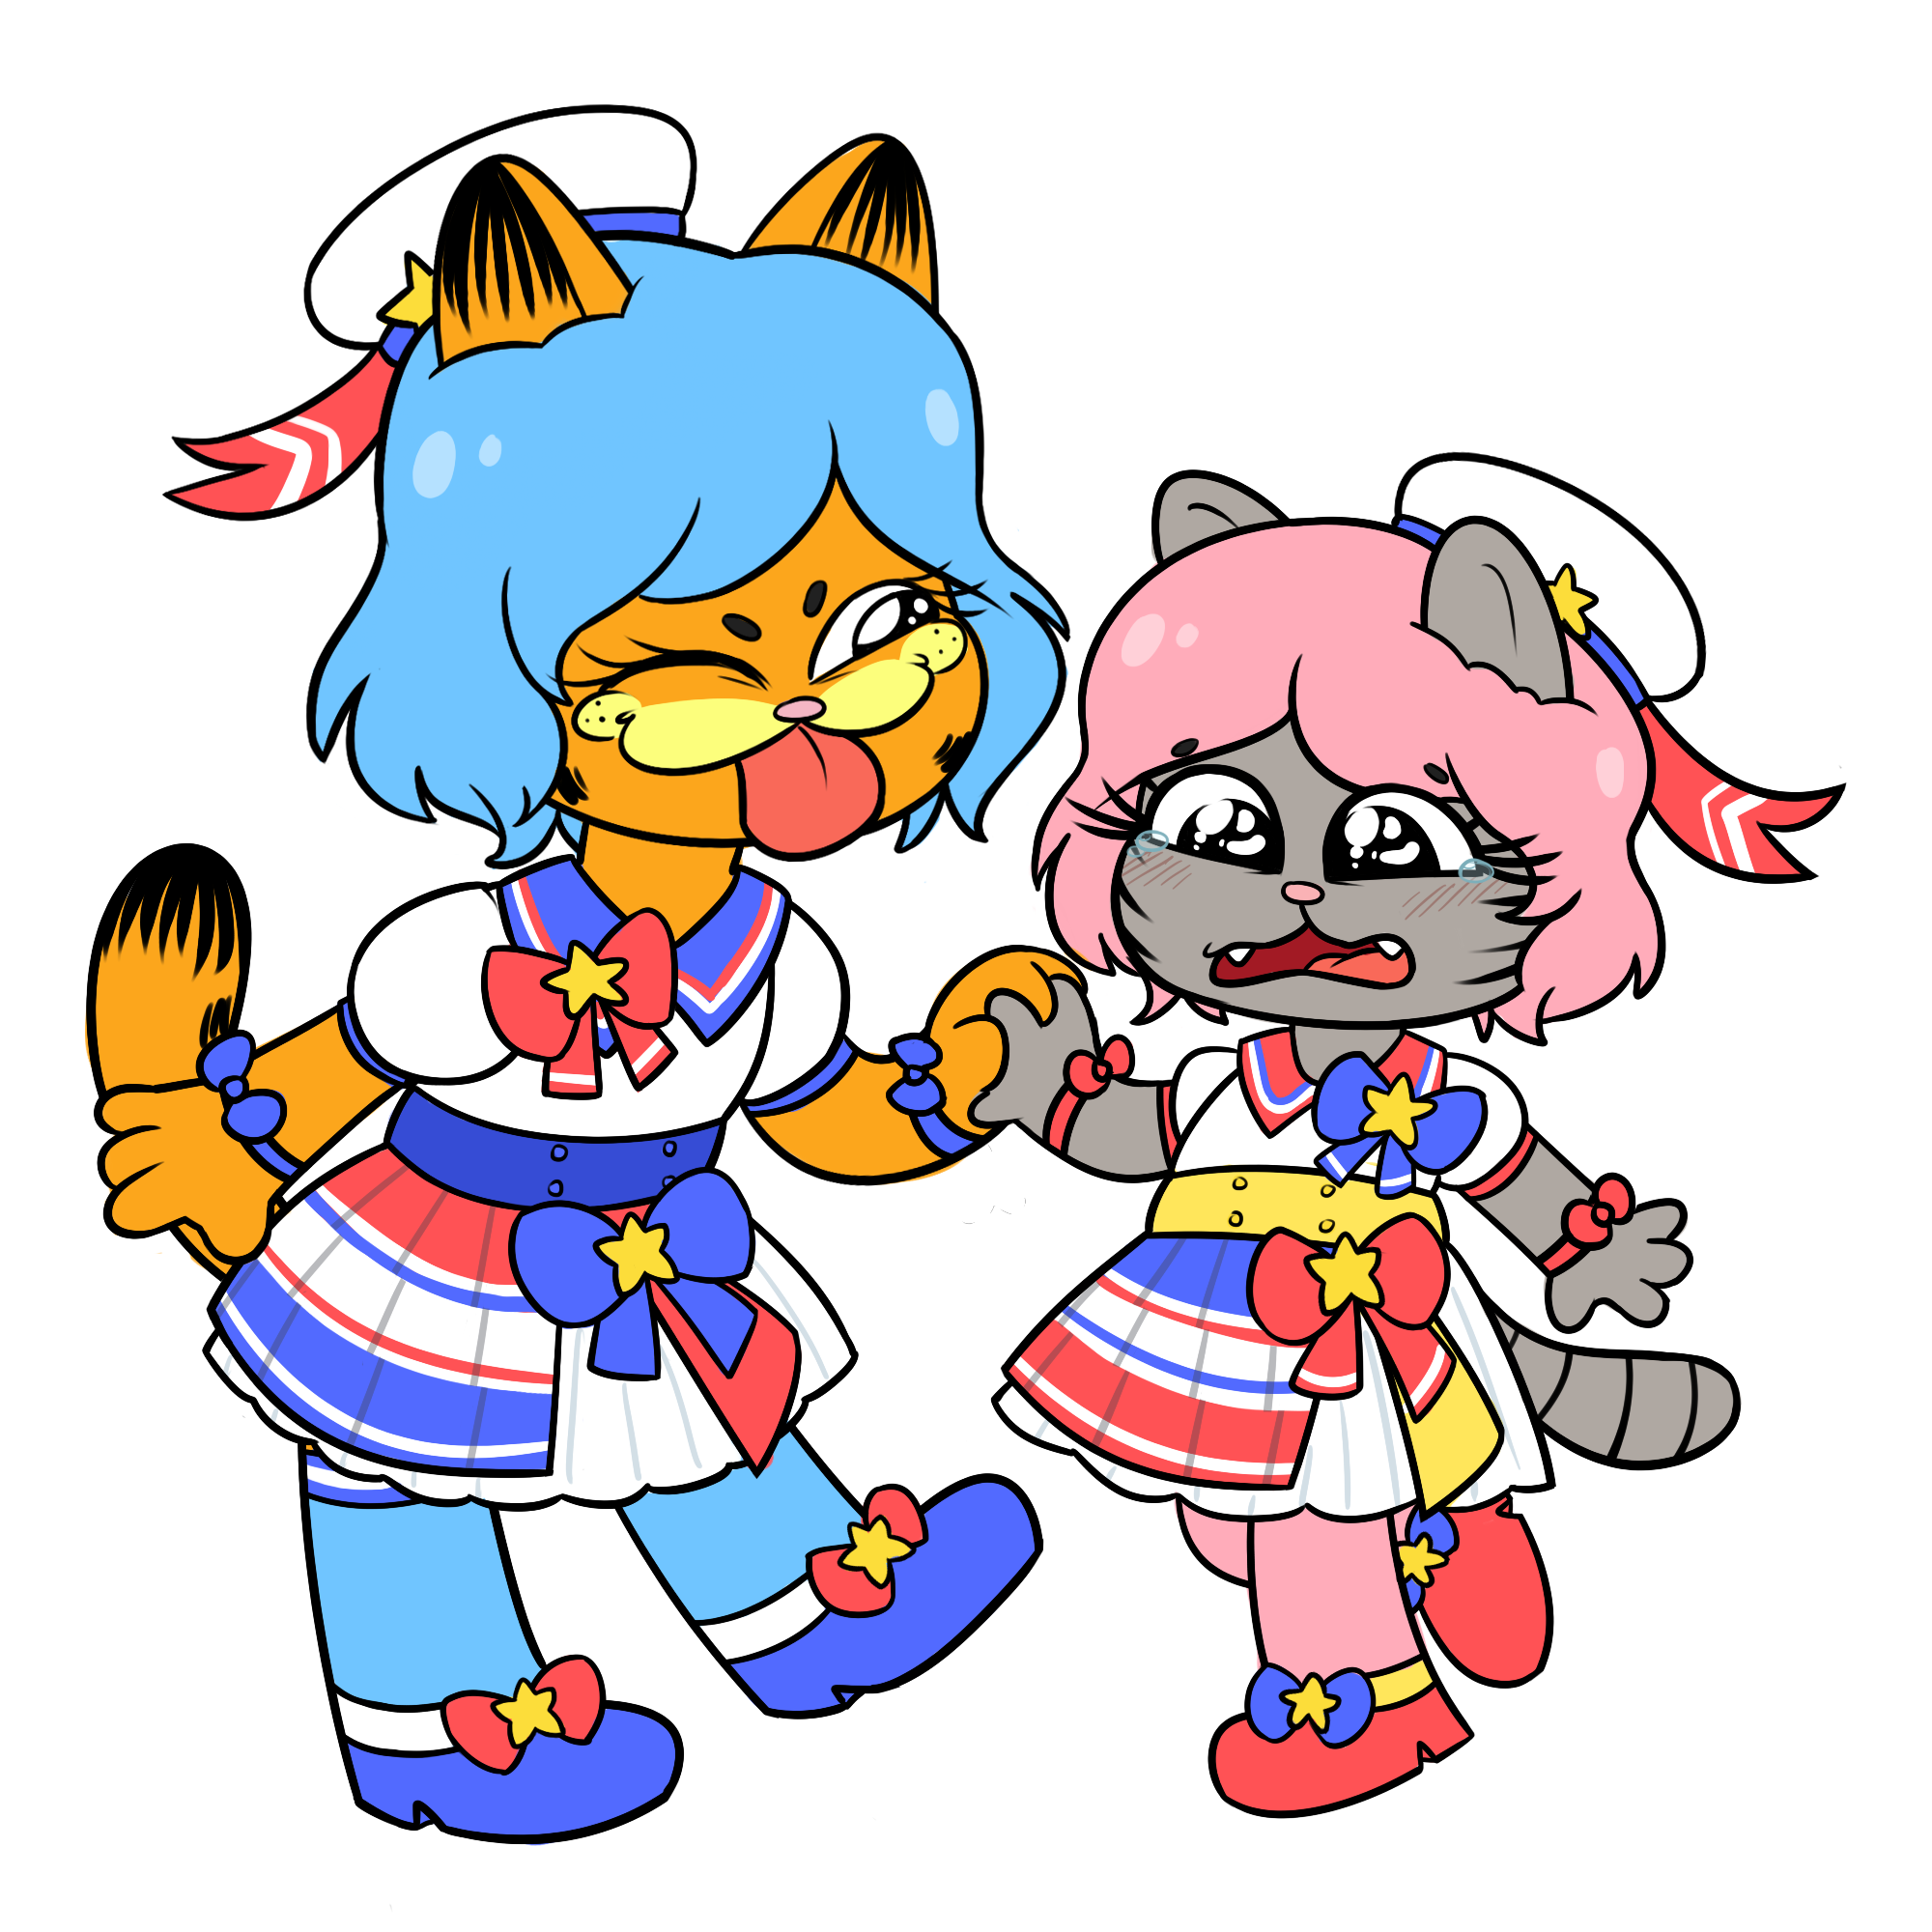 What S Wrong Nermal Chan Didn T You Want To Be Kawaii Garfield Know Your Meme